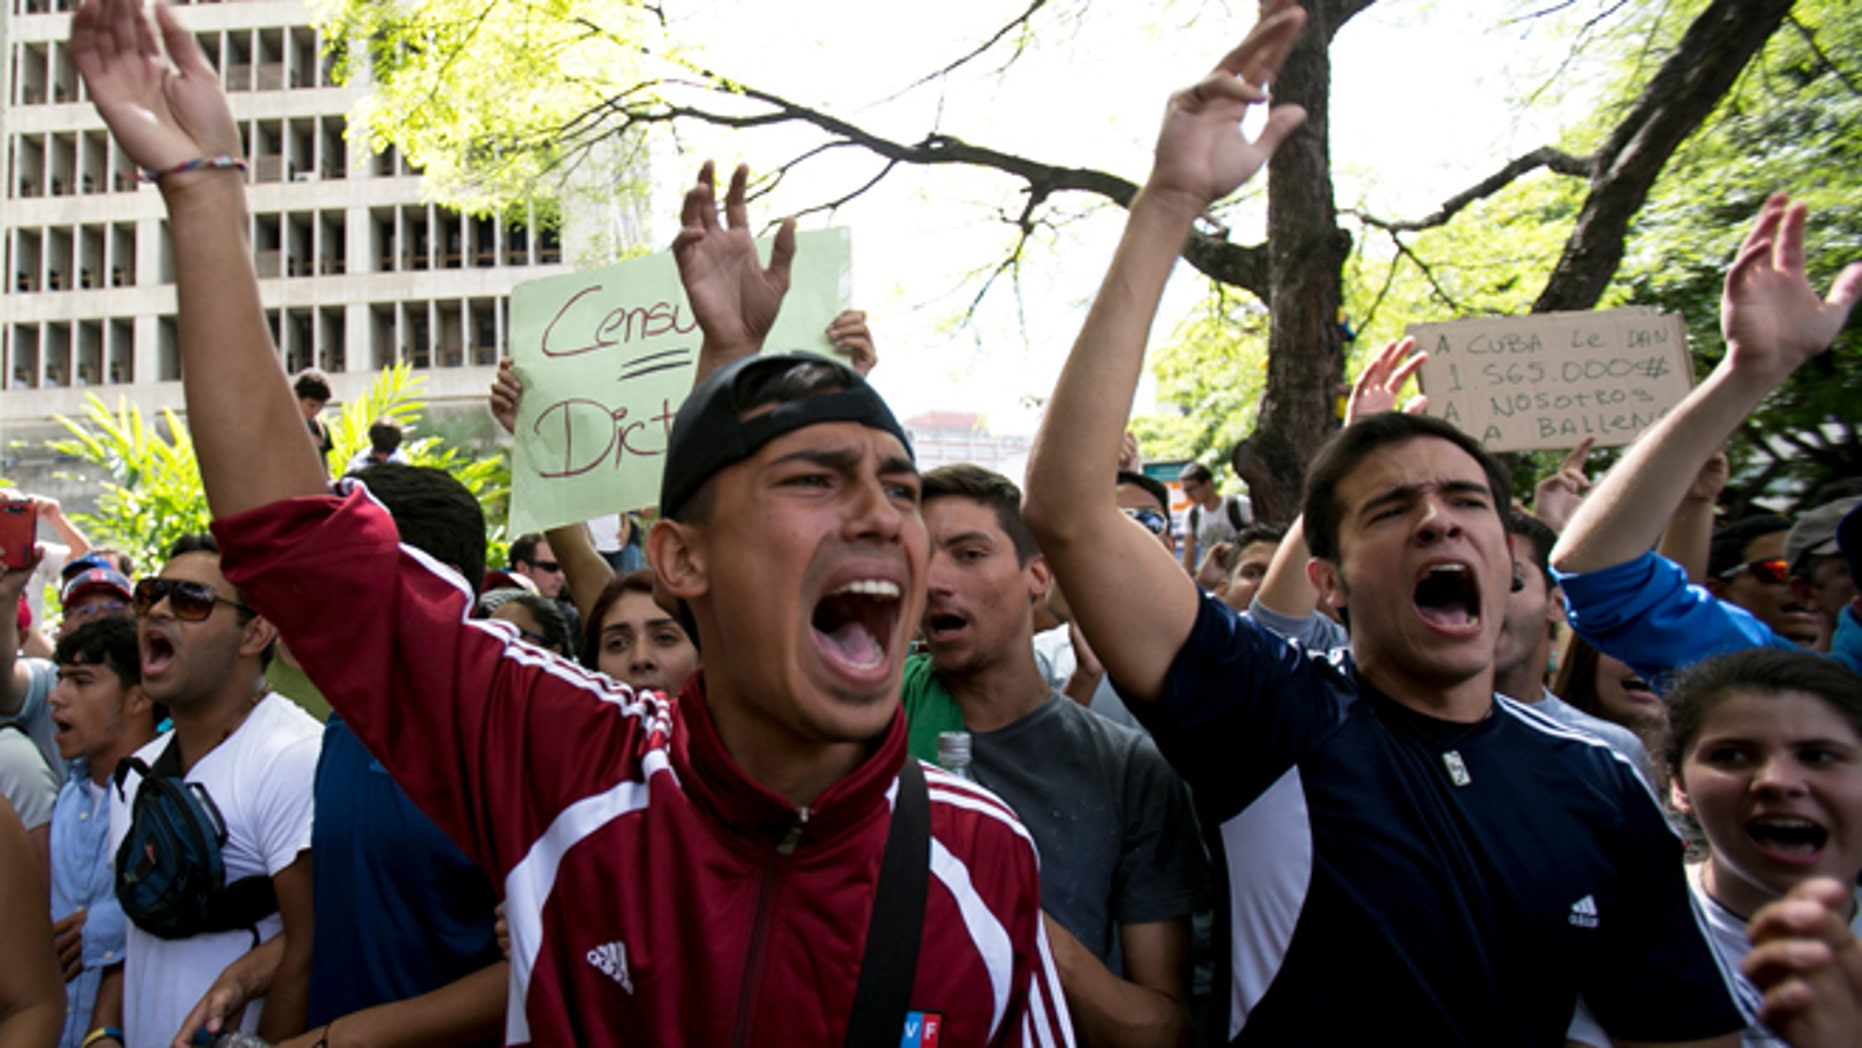 Feb. 17, 2014: Students shout slogans against Venezuela's President Nicolas Maduro during a march to Venezuelan Telecommunications Regulator Office or CONATEL in Caracas, Venezuela.